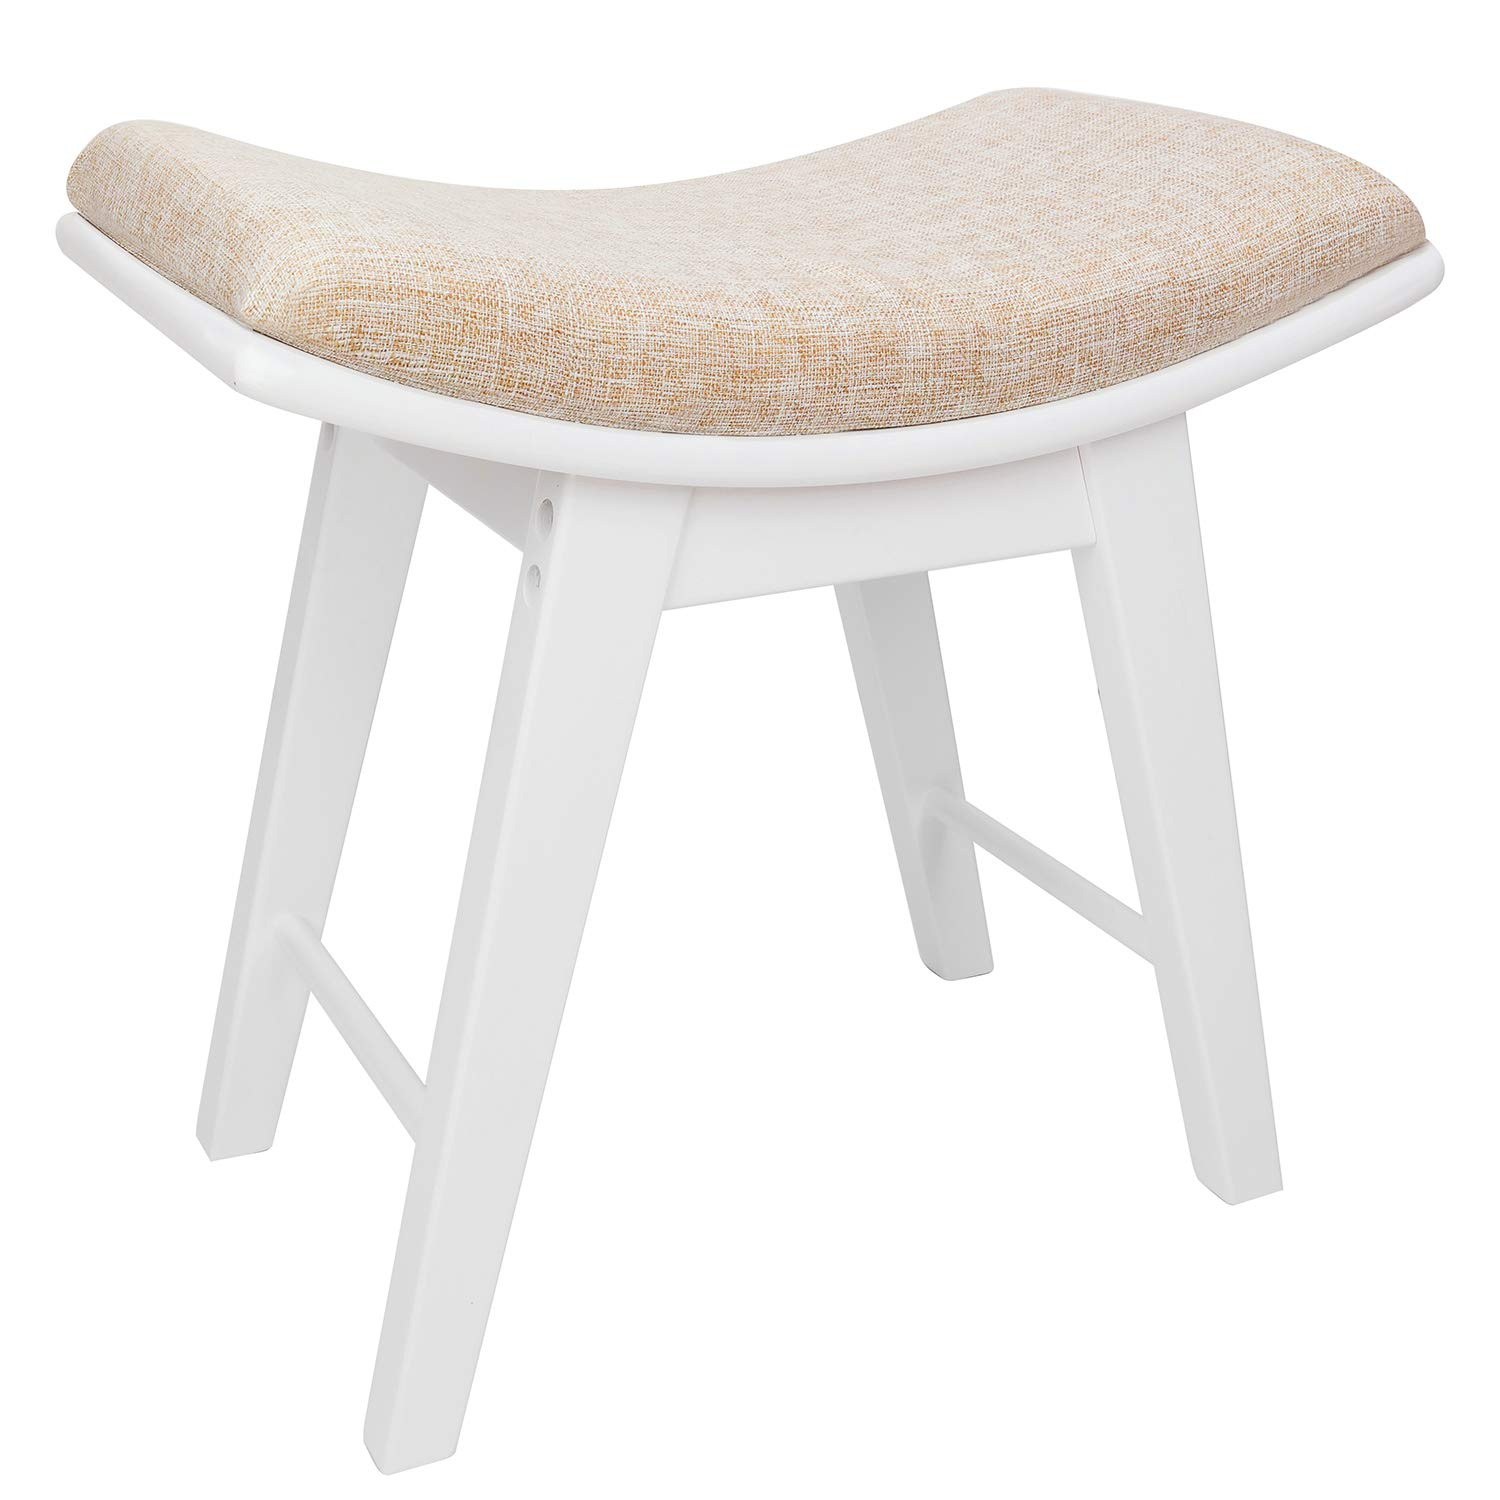 Vanity Stool, Modern Makeup Dressing Stool with Concave Seat Surface, Padded Bench with Rubberwood Legs, Capacity 286lb, Easy Assembly (White) by Welcare